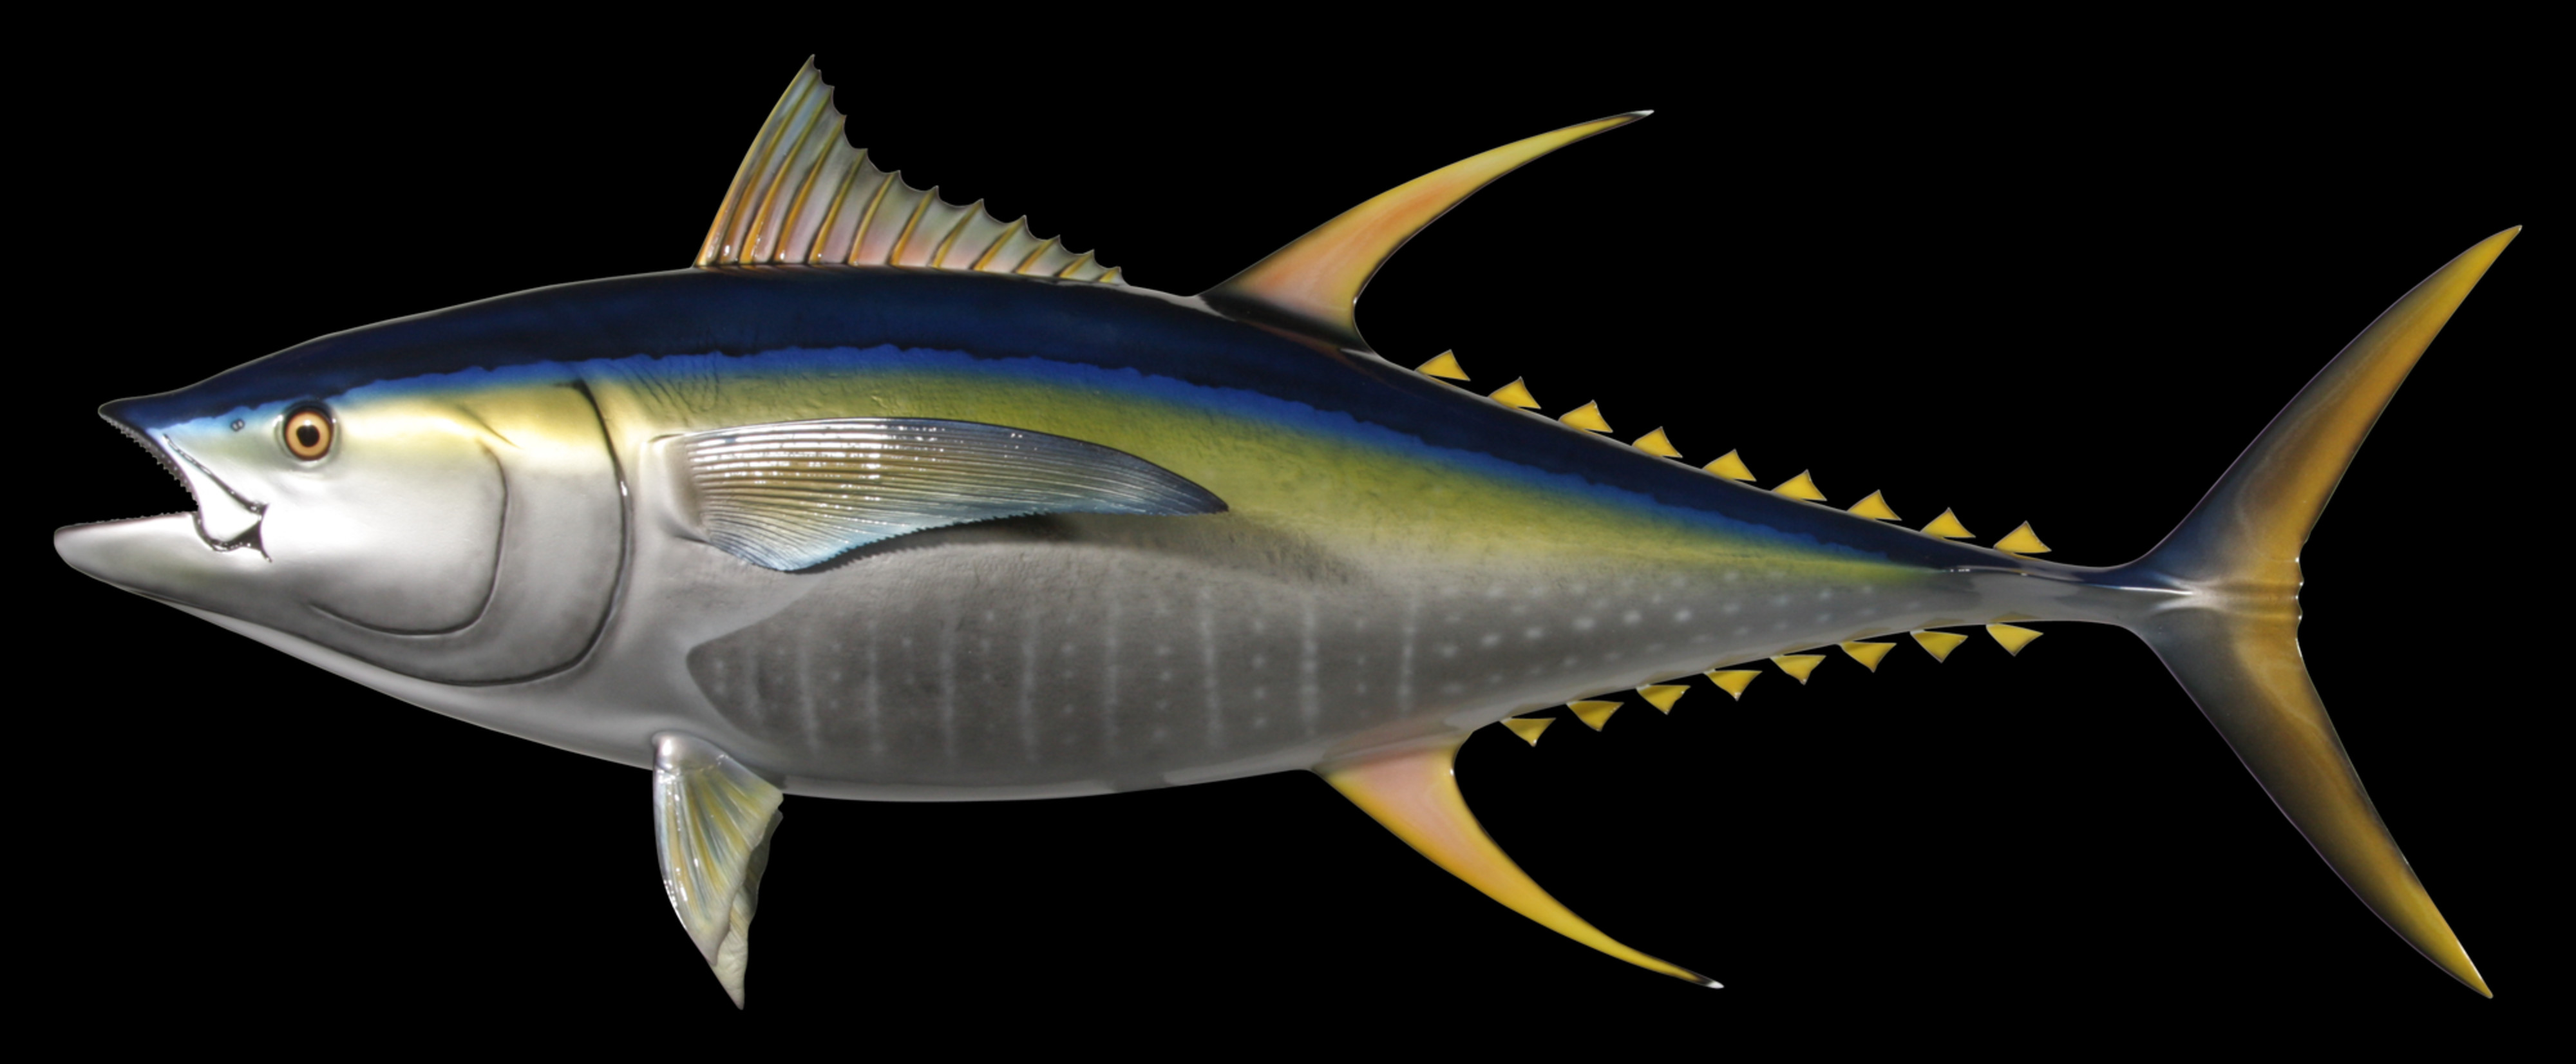 Yellowfin tuna fish mount and fish replicas coast to coast for What does a tuna fish look like